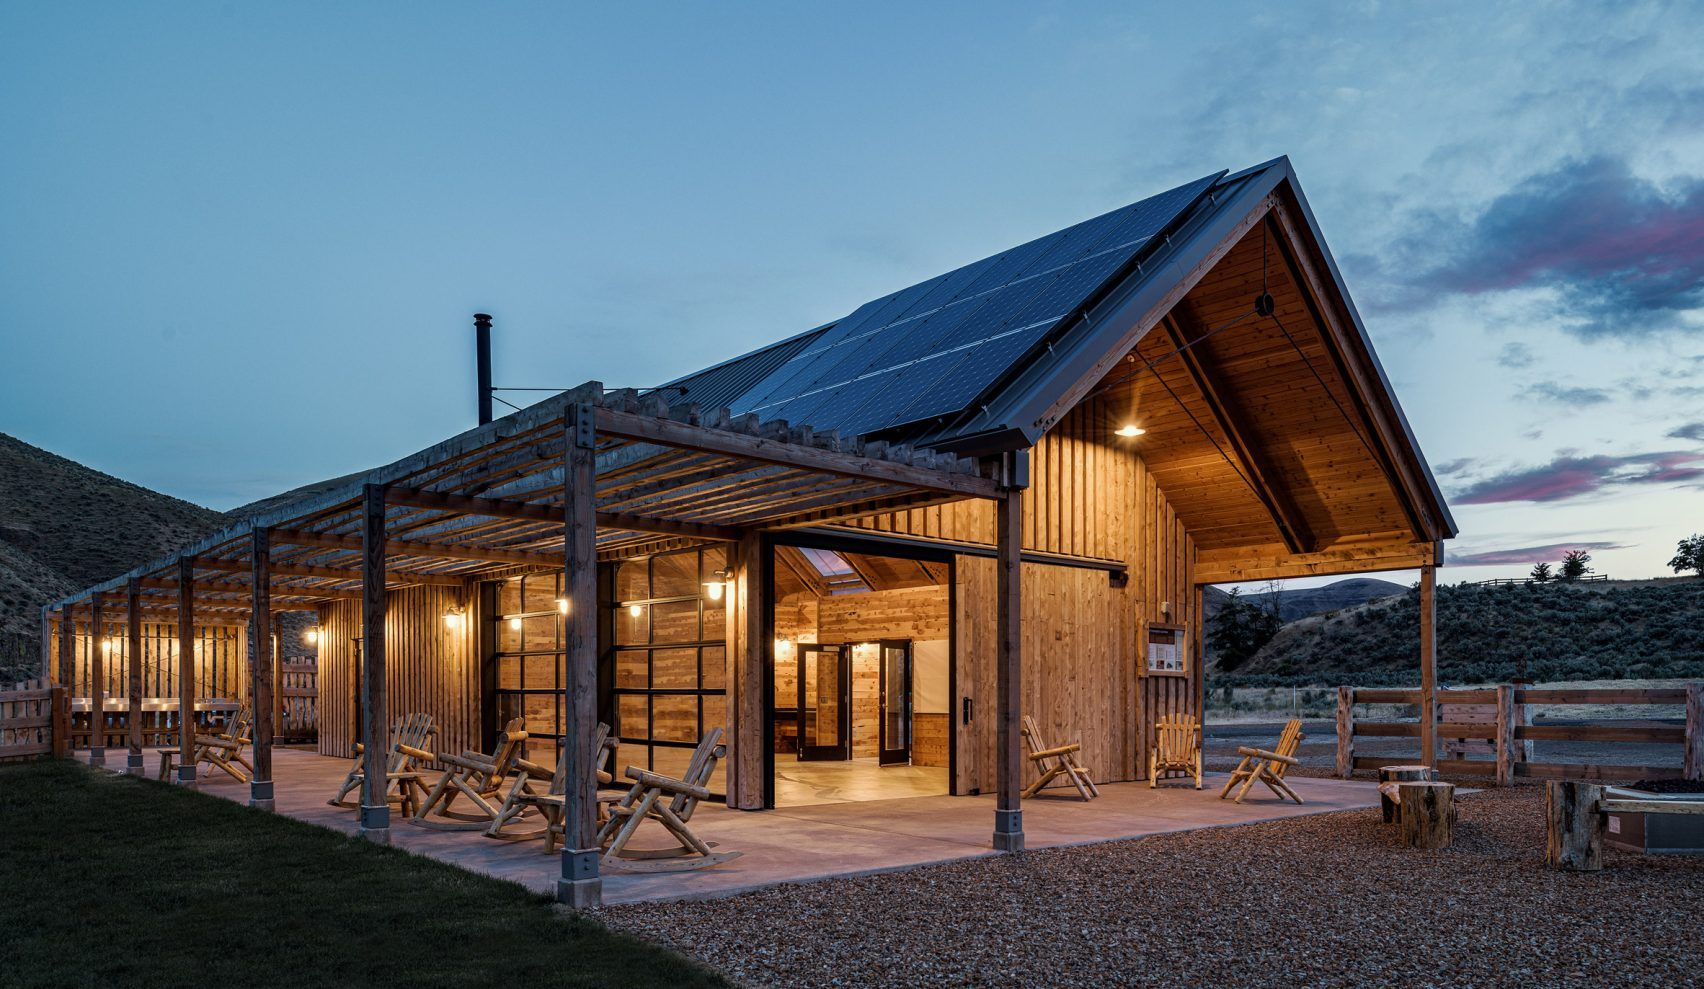 Barns and ranches inform Signal's Experience Center in